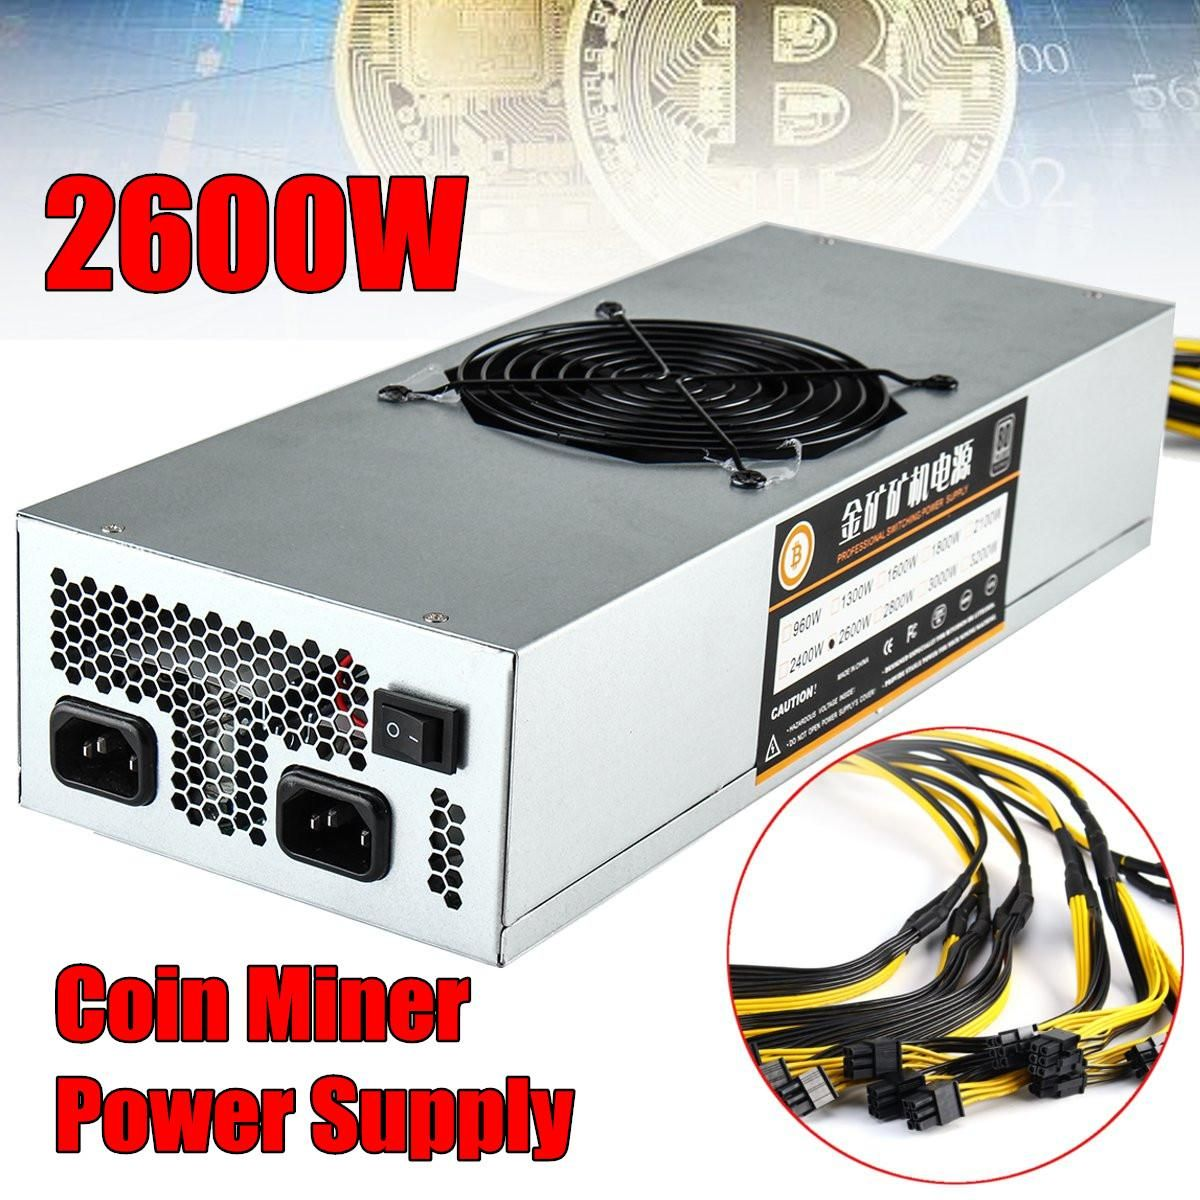 2600w power supply D3 R4 APW3 M1 M3 18*6p,ETH PSU,antminer A4 A6 S7 S9 E9 L-3 BTC LTC DASH miner power supply